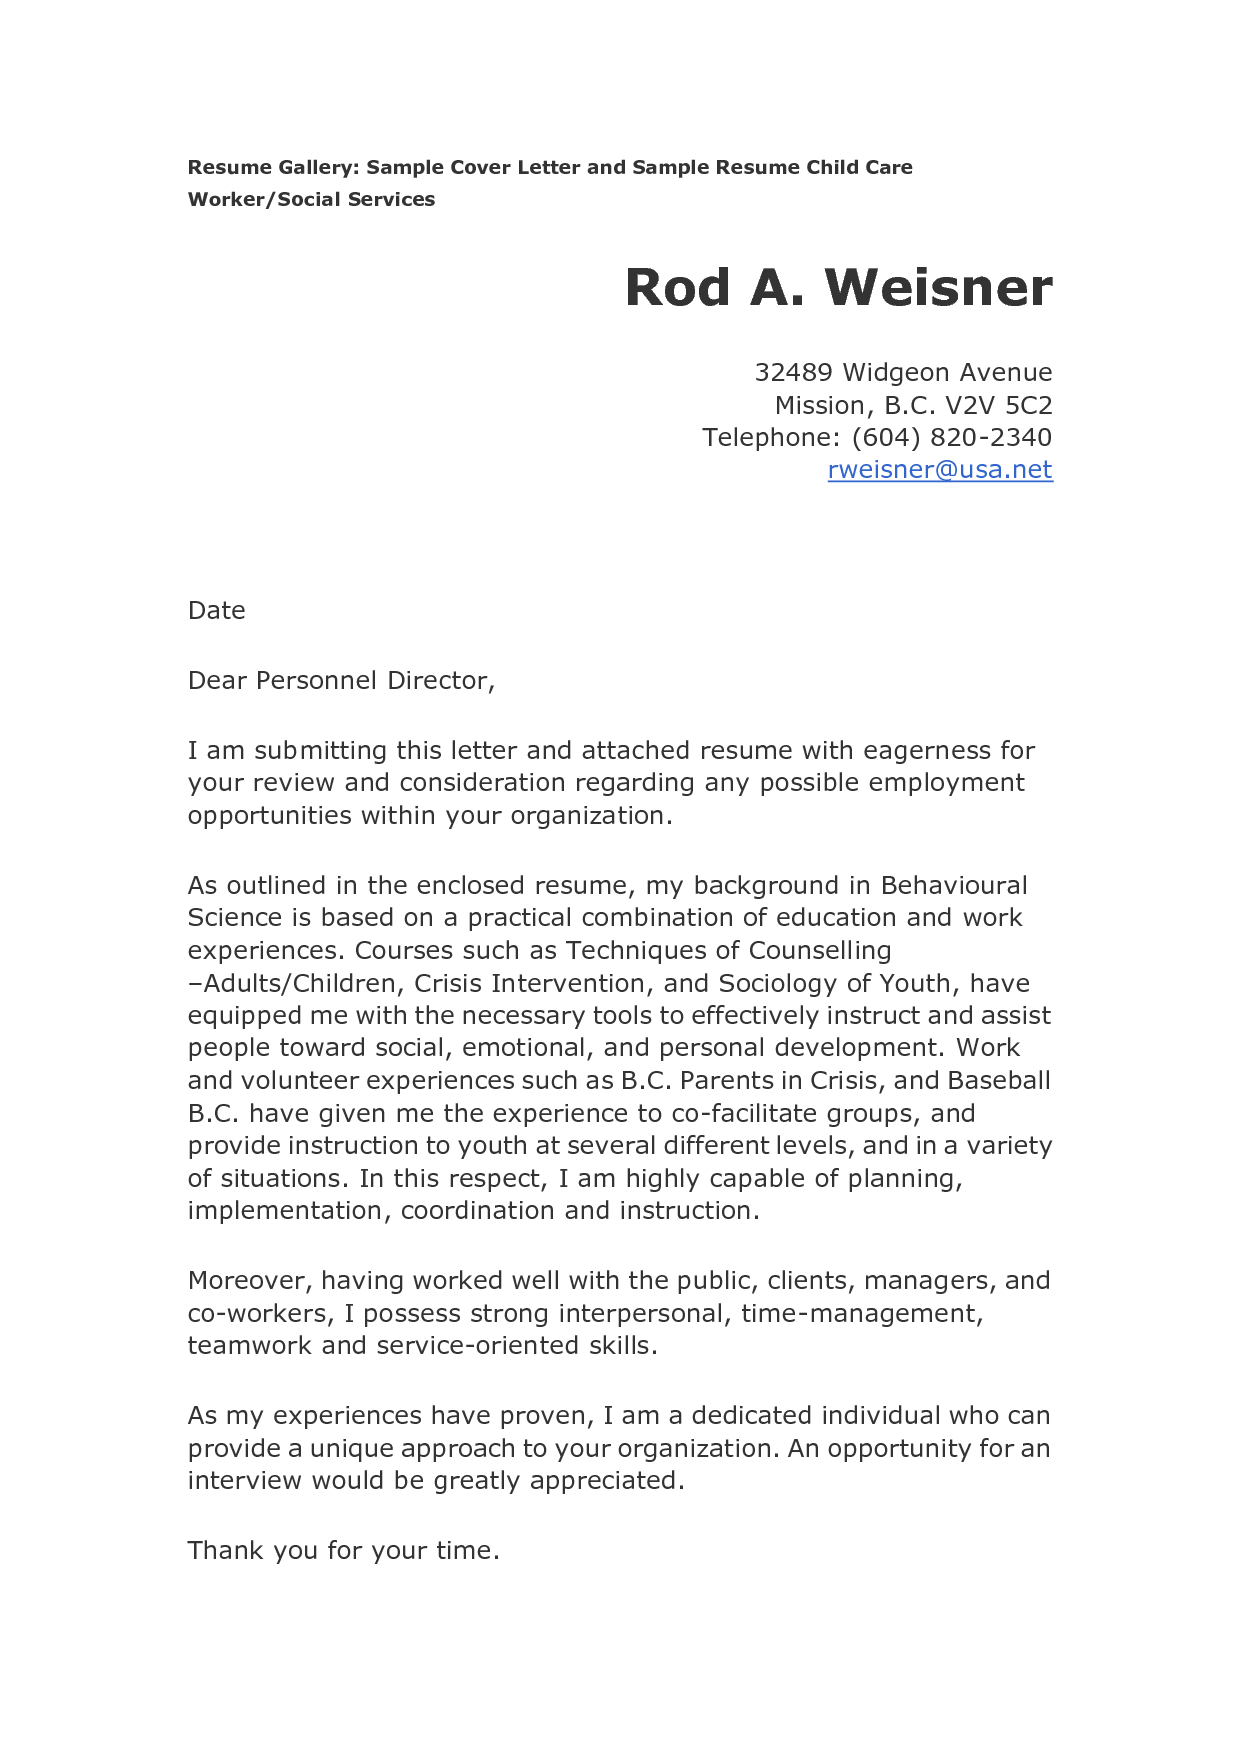 child care cover letter for resume httpwwwresumecareerinfochild care cover letter for resume 7